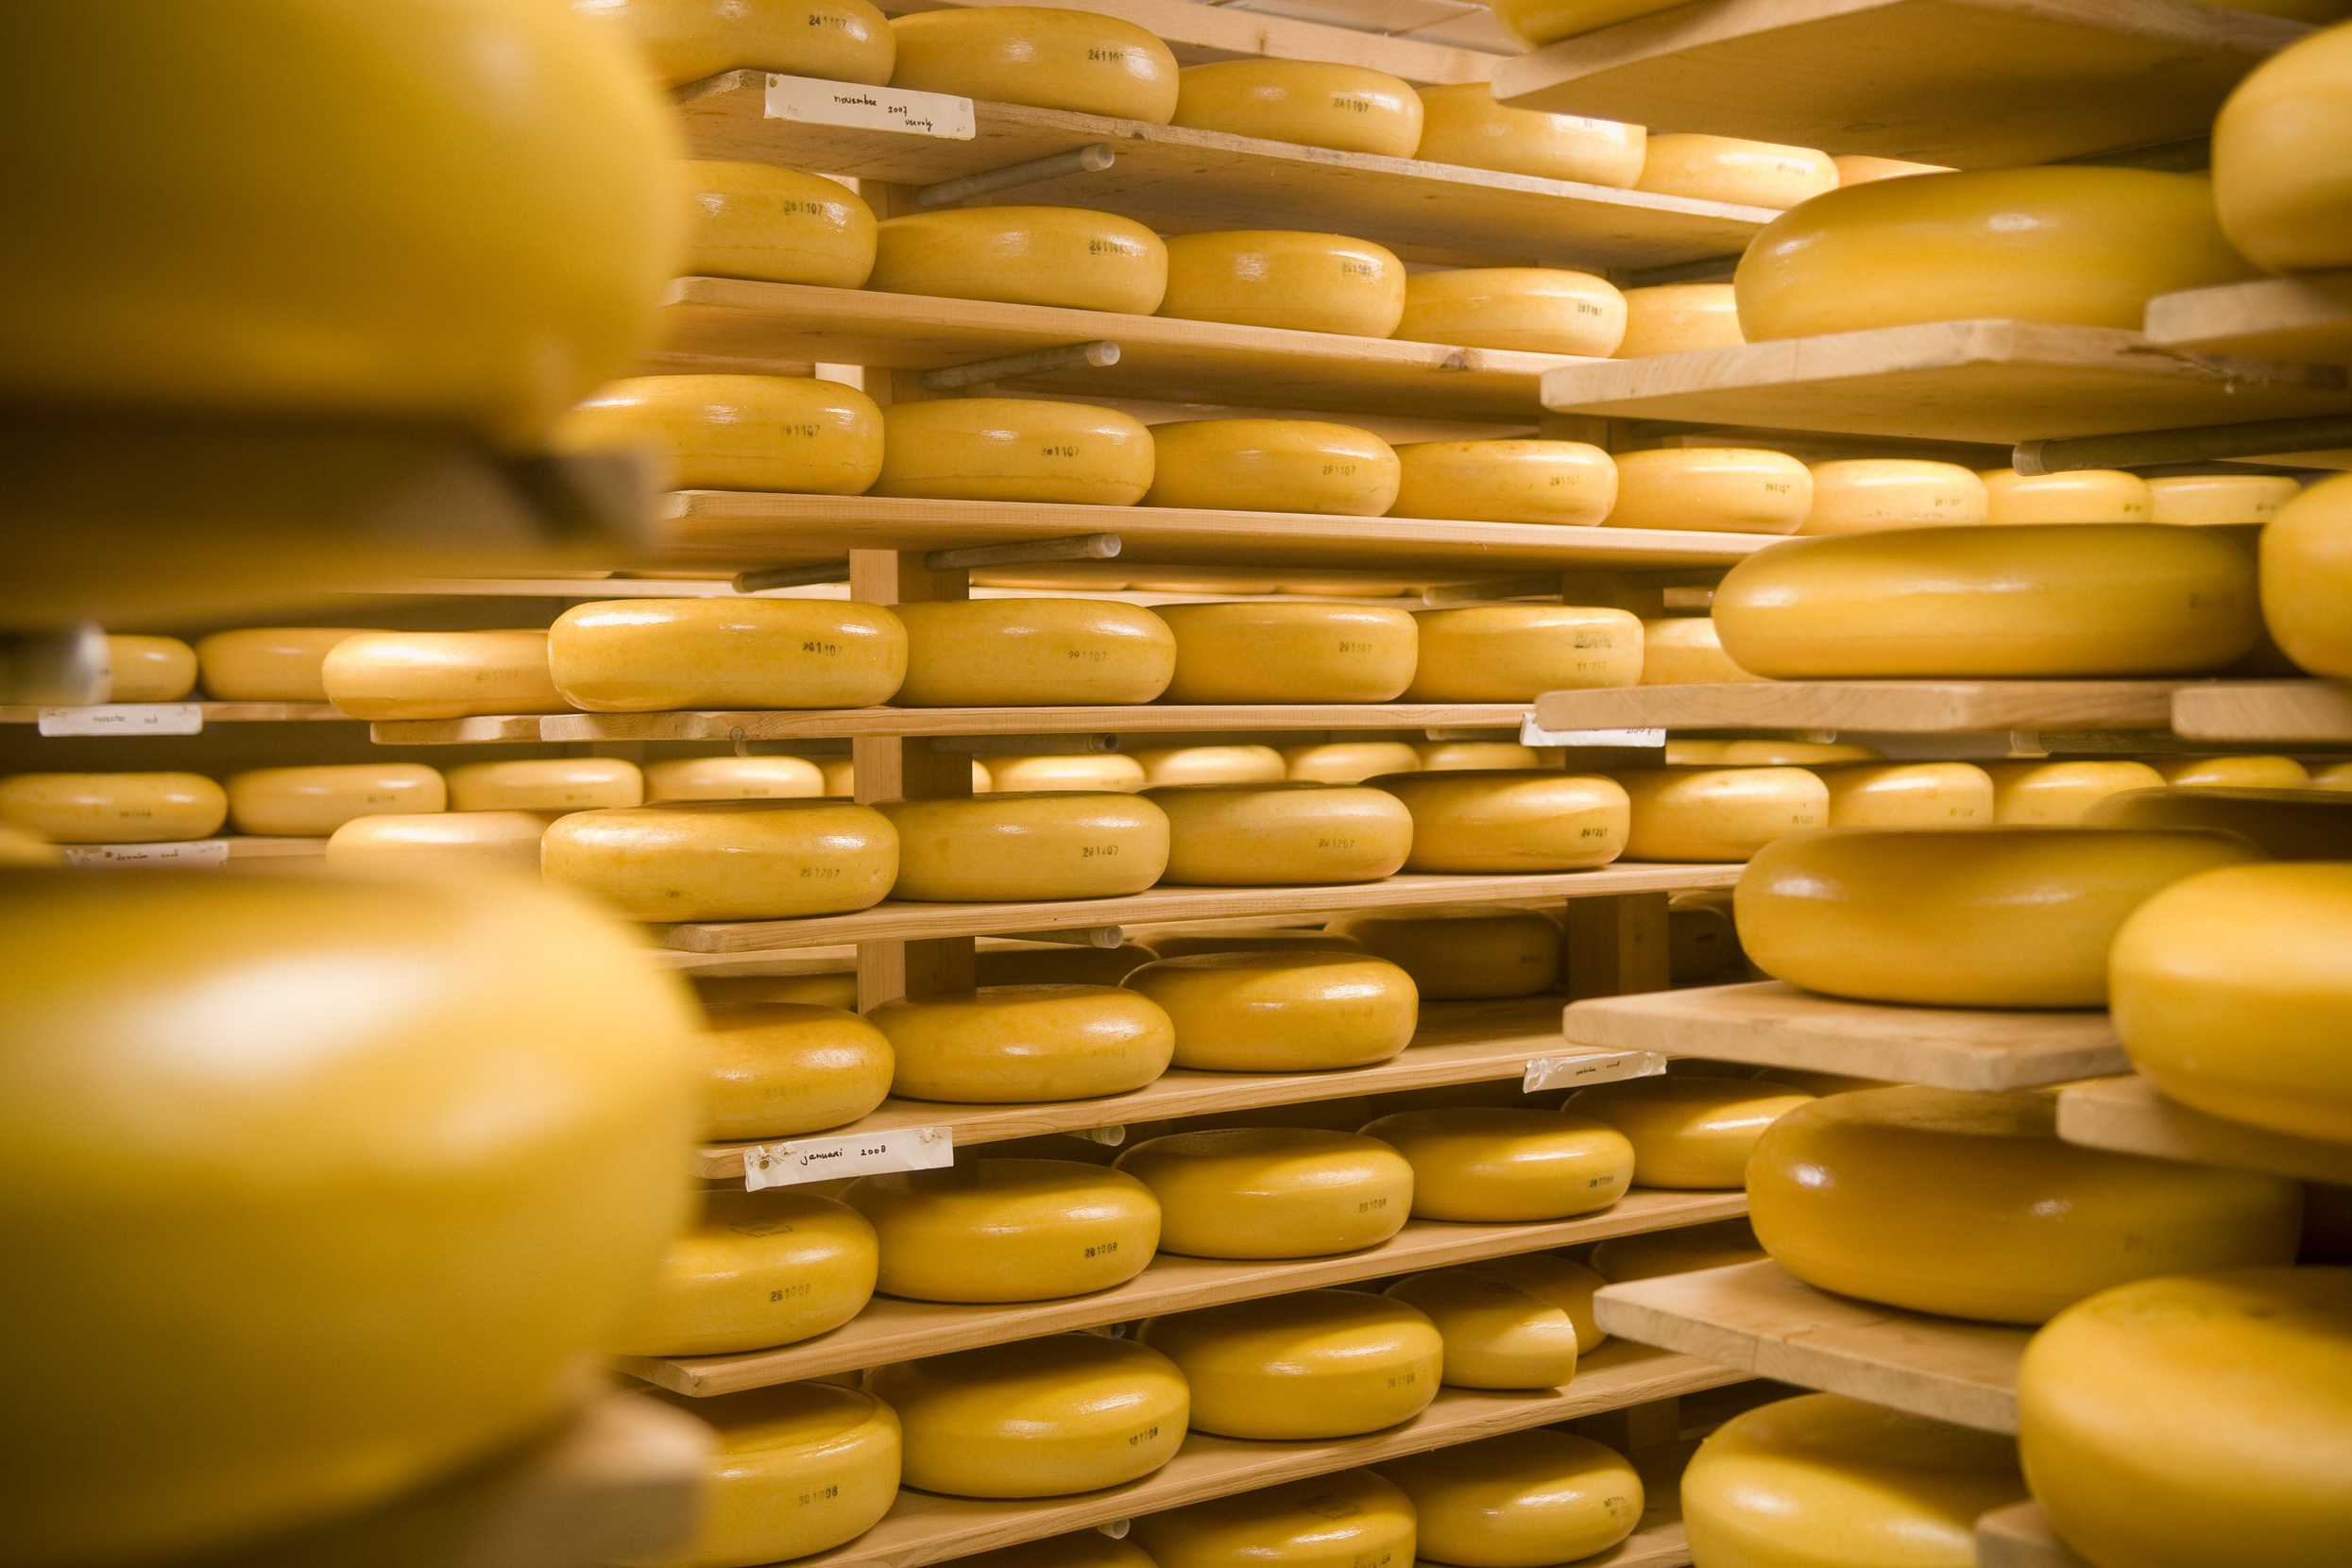 NL_359-Cheese-Source-NL-Agency.jpg